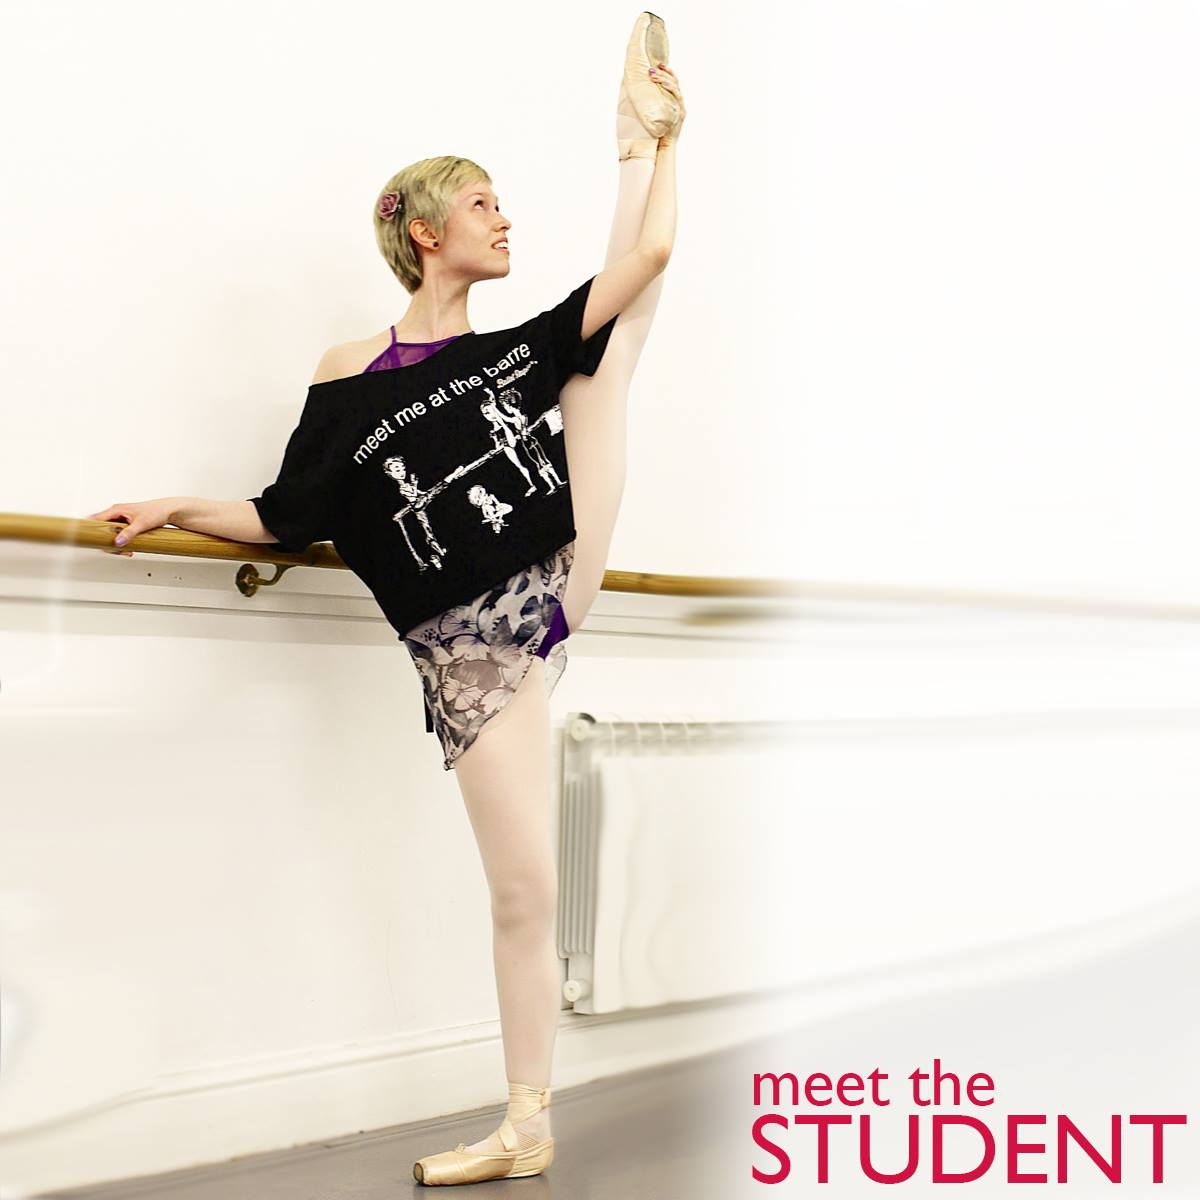 meet-the-student-georgina-butler-royal-academy-of-dance-2